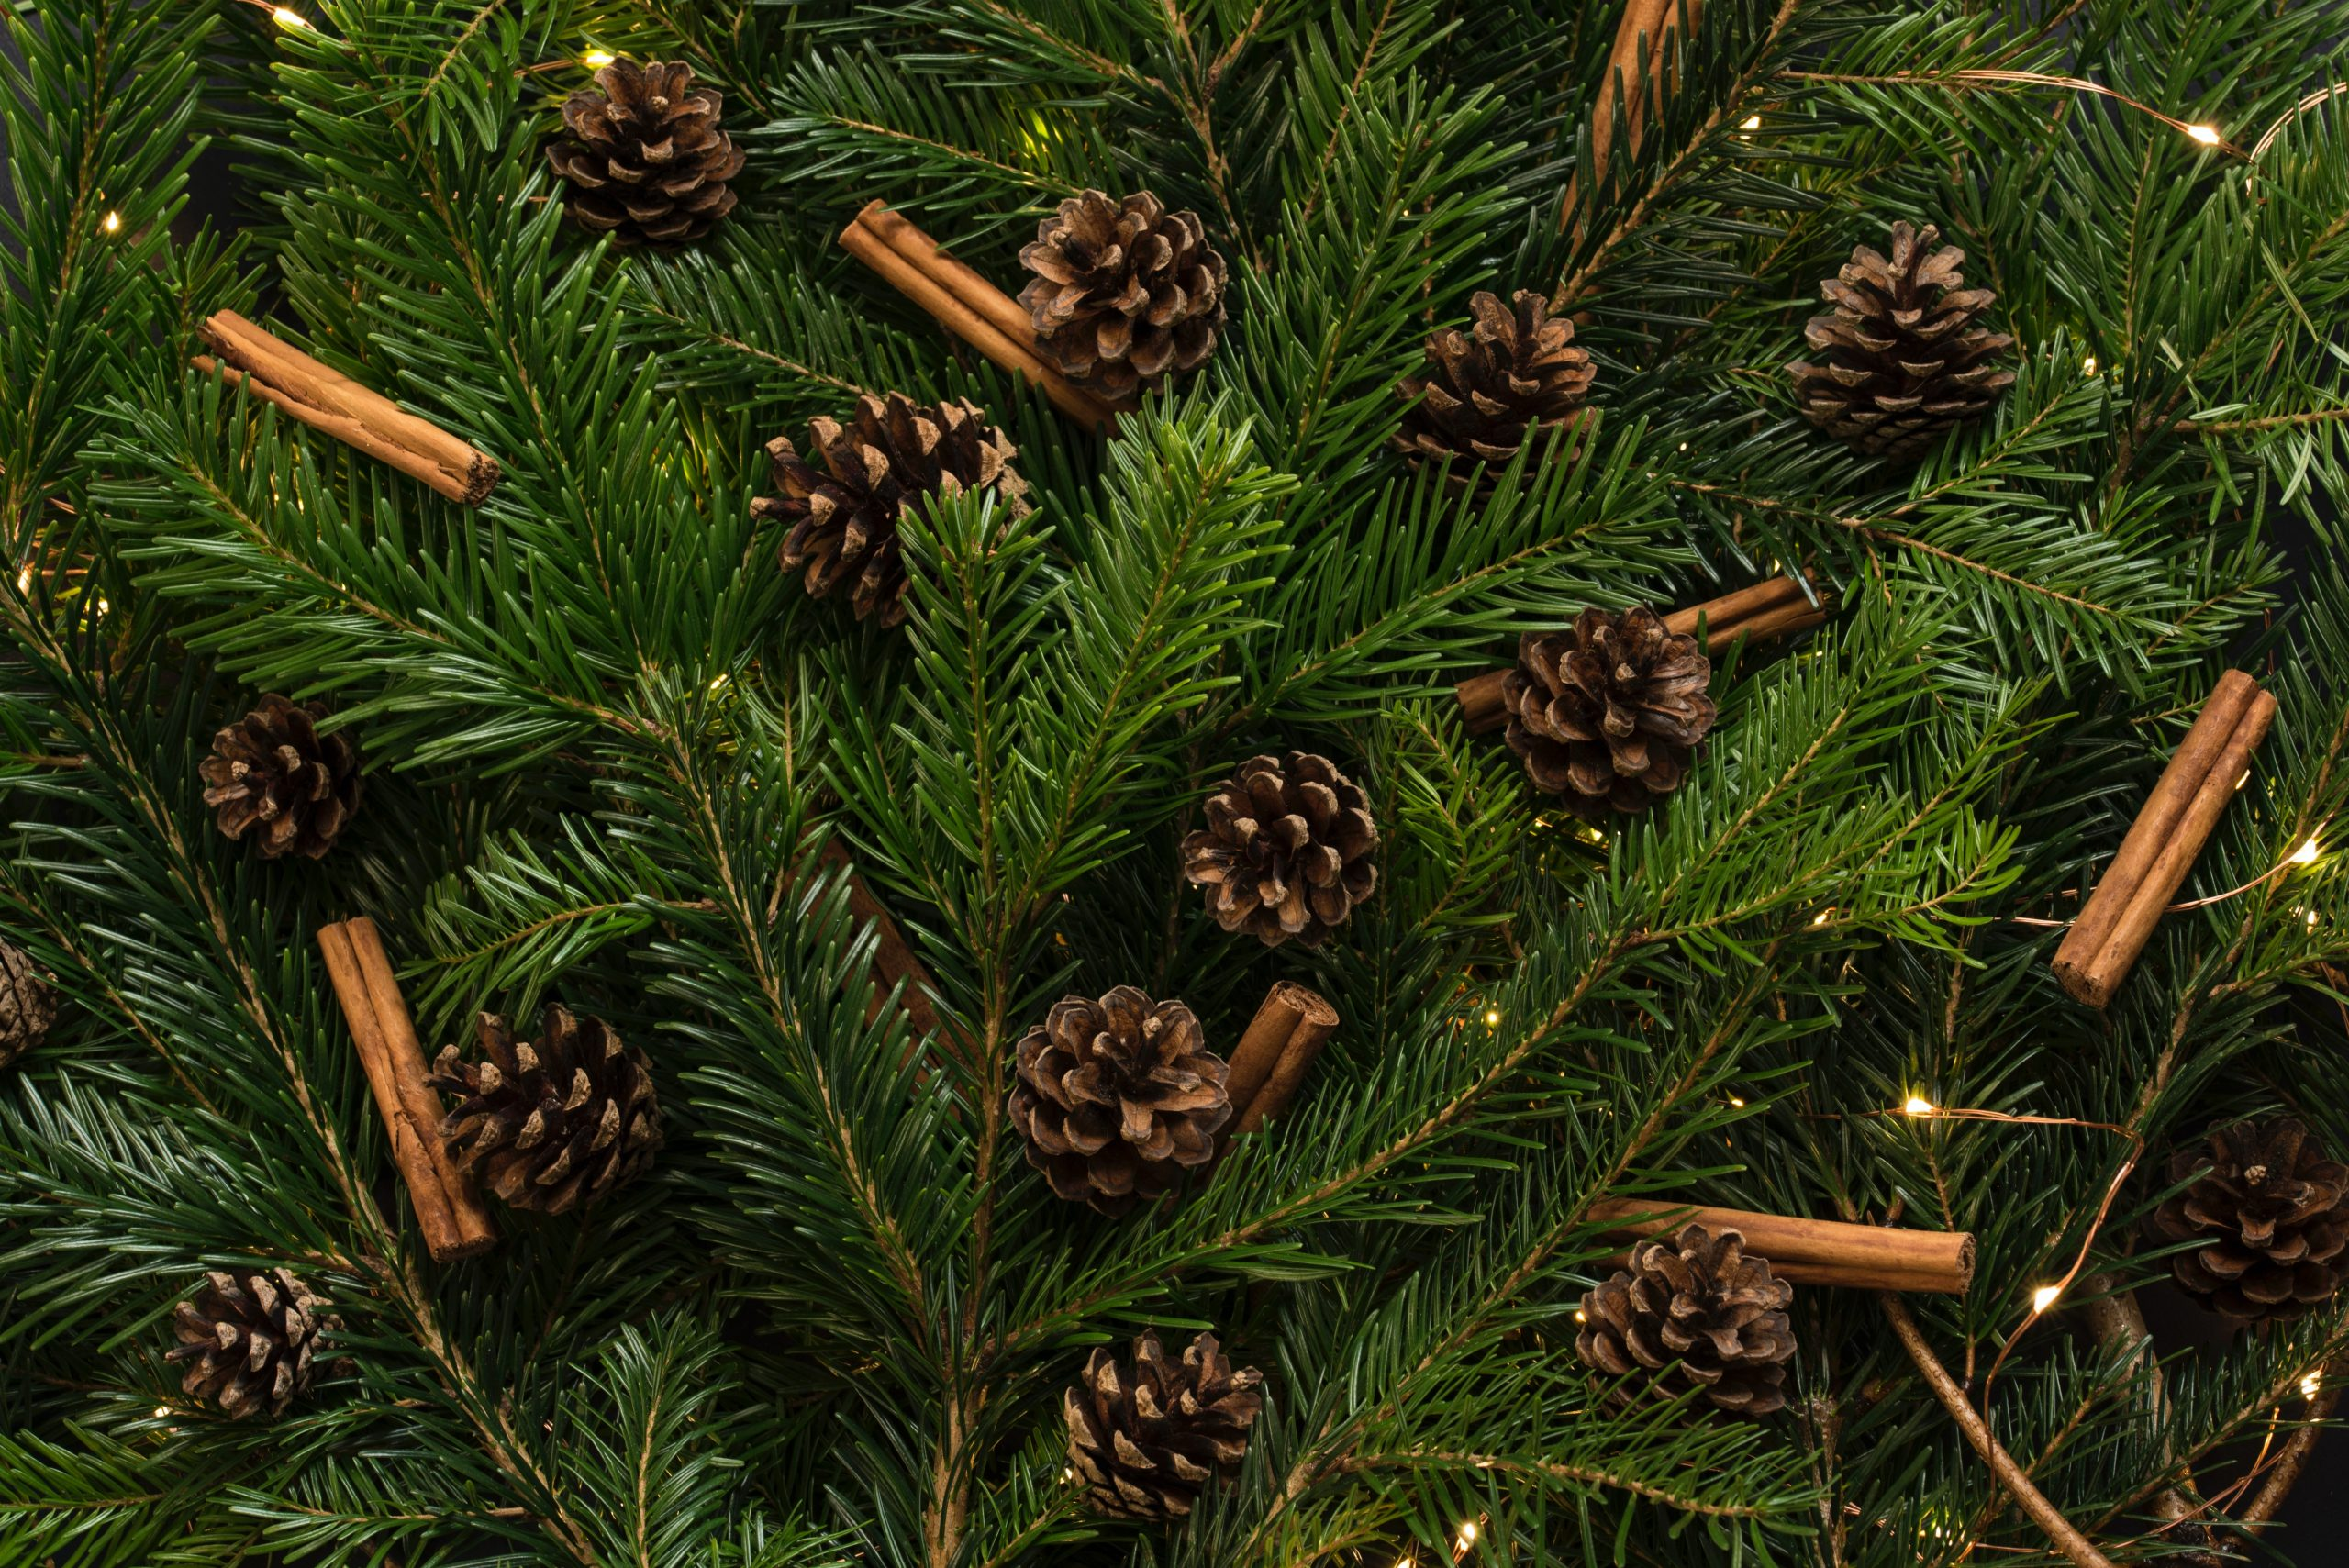 brown pine cones in pine tree